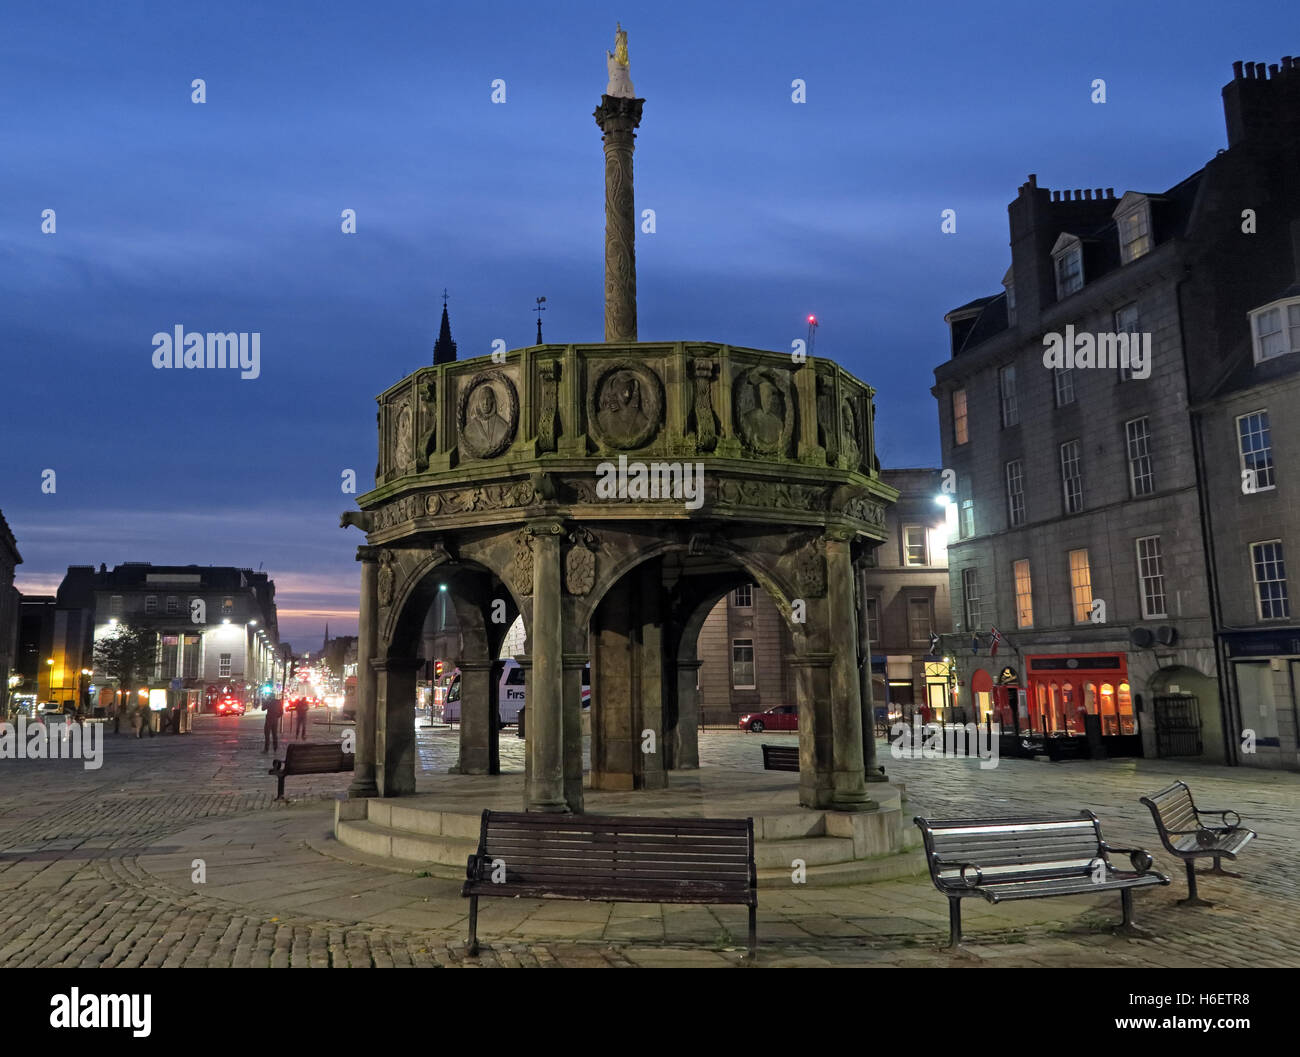 night,blue,hour,historic,tourist,tourism,travel,square,castle,trail,culture,Scottish,history,Alba,Architecture,building,night,shot,nightshot,local,landmark,city,centre,destination,Blue Hour,Castle Trail,Scottish Culture,Local Landmark,City Centre,Travel Destination,Castle Square,GoTonySmith,@HotpixUK,Tony,Smith,UK,GB,Great,Britain,United,Kingdom,English,British,England,terrace,lit,lighted,tower,Dee,Don,rivers,river,statue,castlegate,gate,Mercat,Cross,hub,historical,area,cobbled,scenic,view,buildings,building,granite,Architecturally,union,st,street,sculptures,ancient,Market,Buy Pictures of,Buy Images Of,Images of,Stock Images,Tony Smith,United Kingdom,Great Britain,British Isles,Castle Terrace,Mercat Cross,Compare the Mercat,Historical Area,scenic view,The Mercat Cross,Ancient Market Cross,Market Cross,Scotlands History,Scotlands History